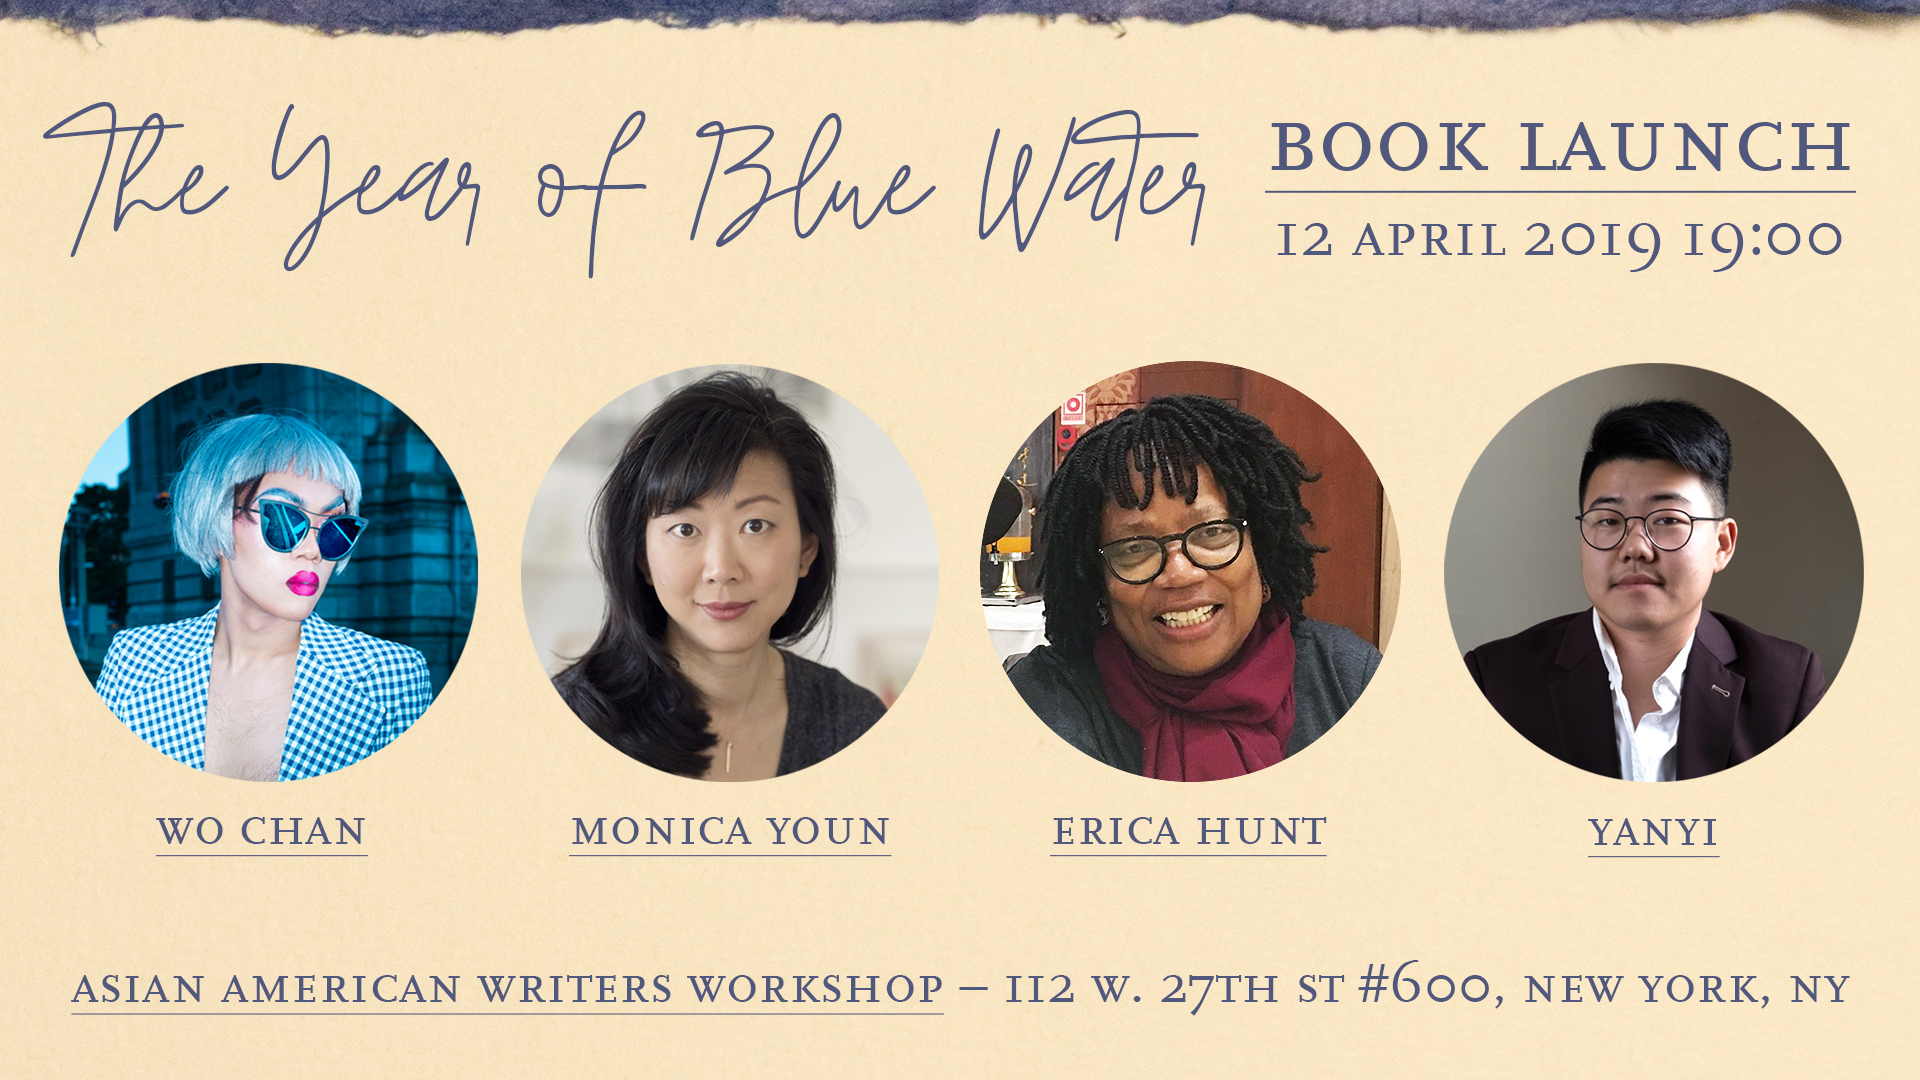 The Year of Blue Water: Book Launch